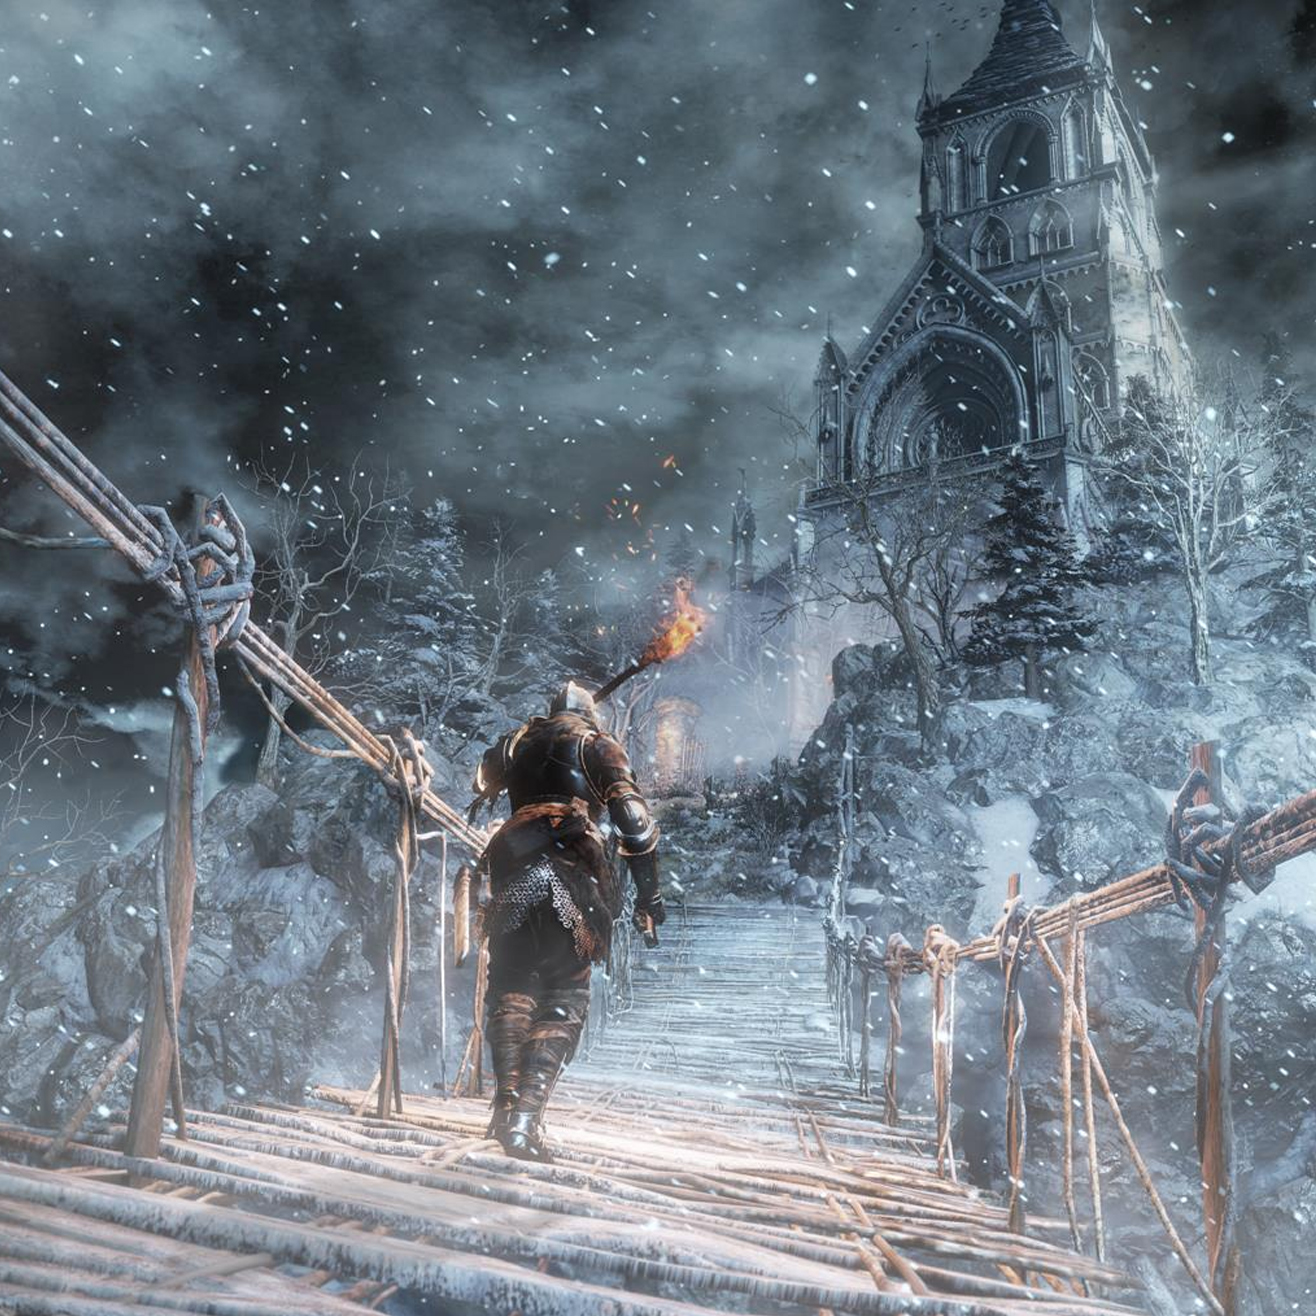 painted_world_of_ariandel.JPG